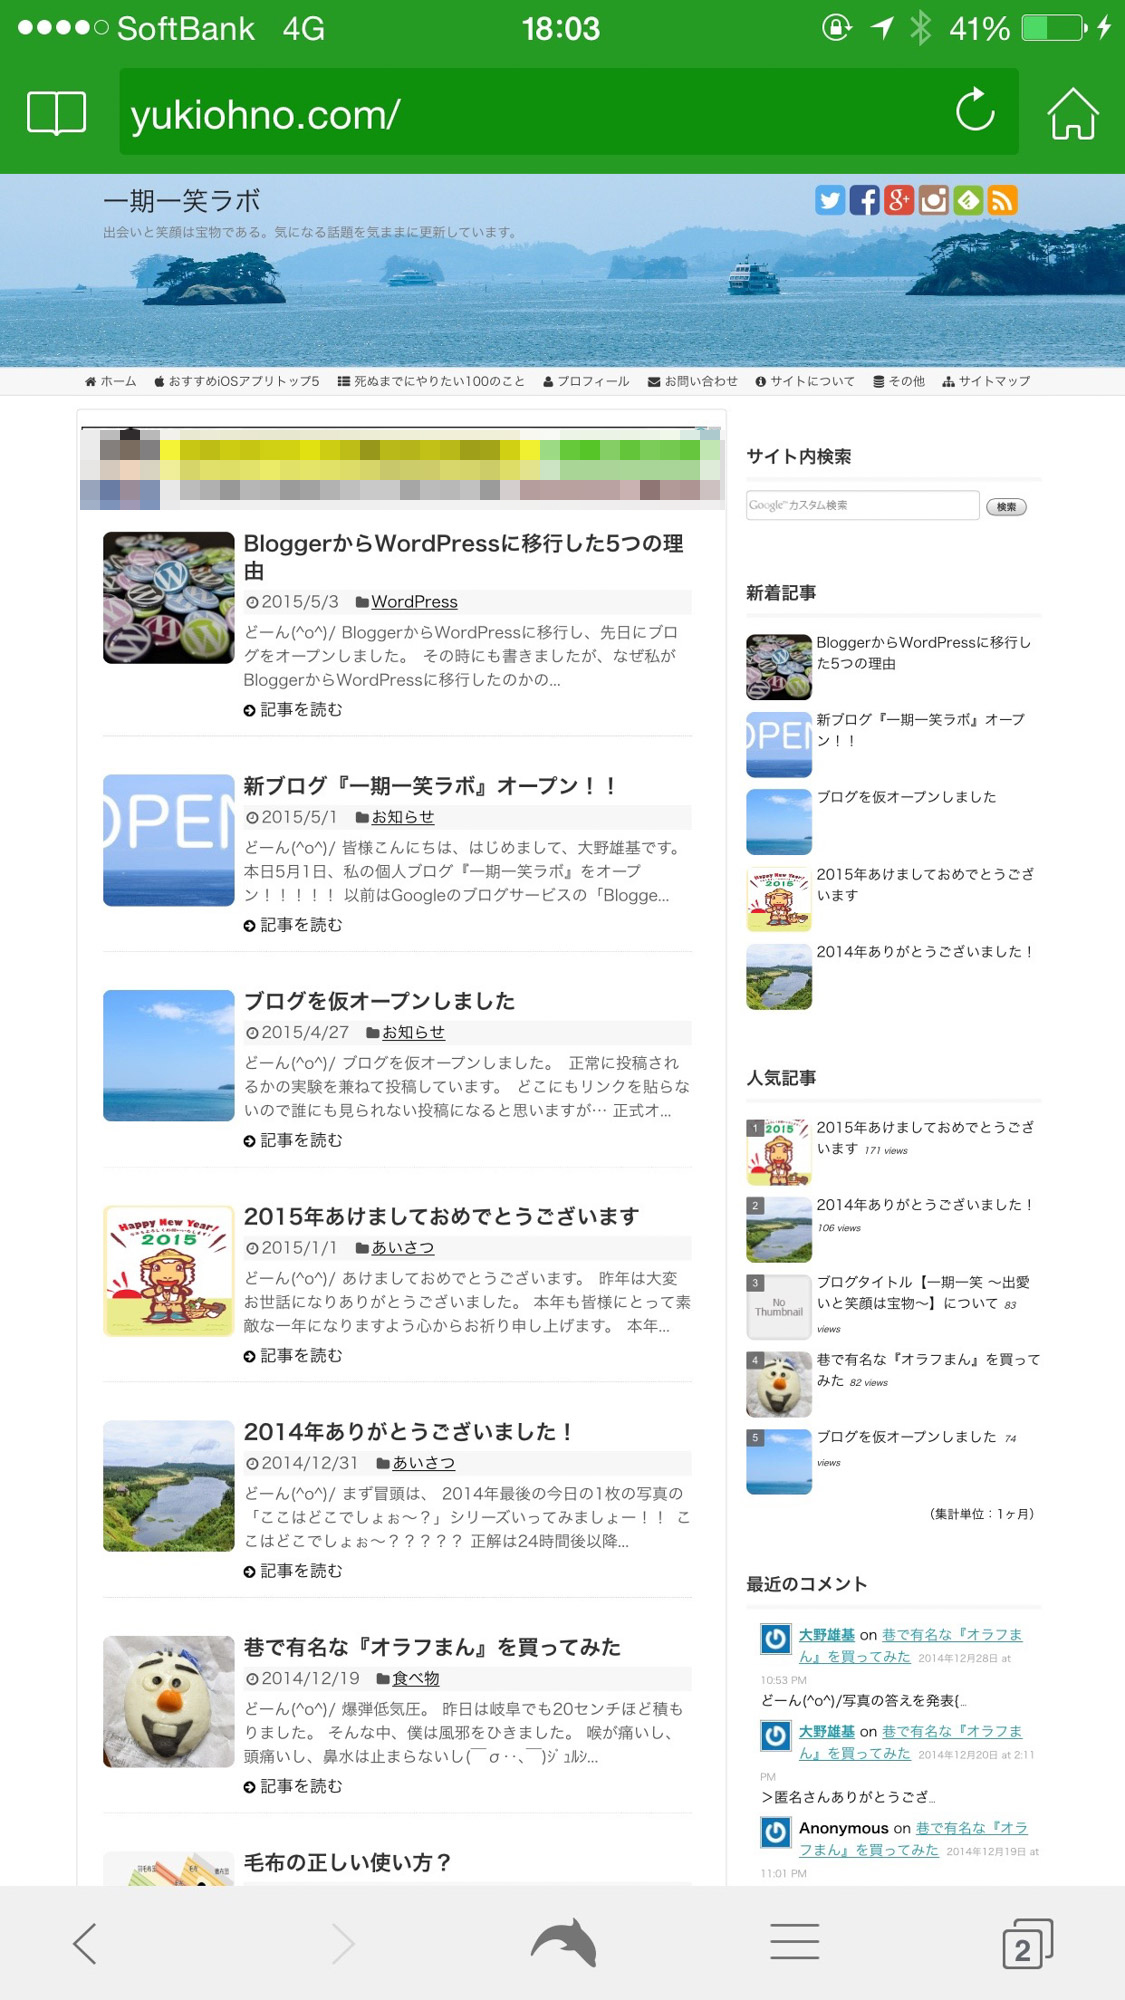 browser-wp-4266